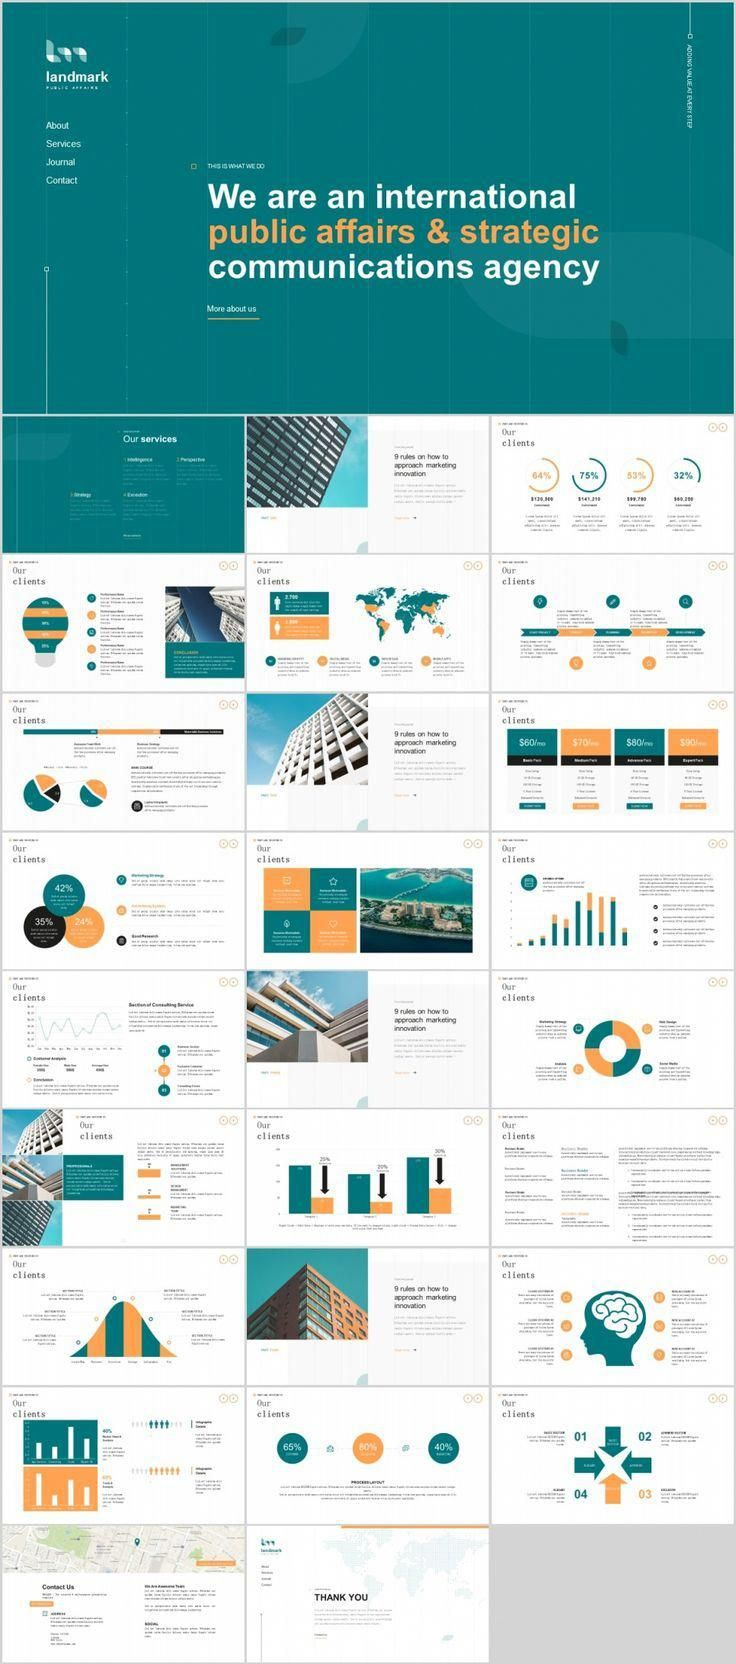 27 Company Cool Introduction Chart Powerpoint Template Ppt Template Design Simple Powerpoint Templates Powerpoint Presentation Design